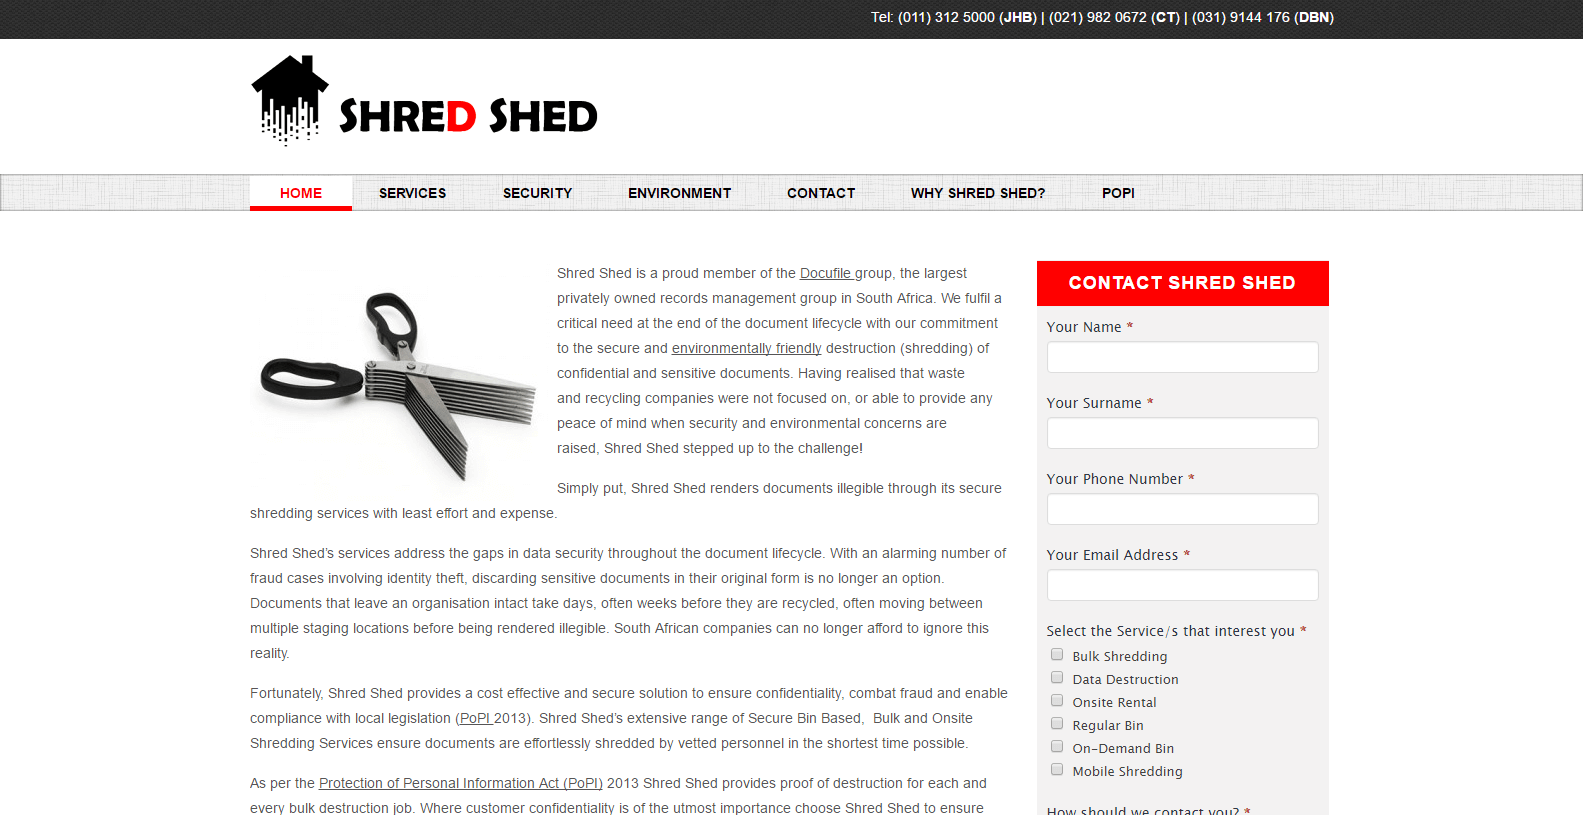 Shred Shed | Nova Marketing Intelligence